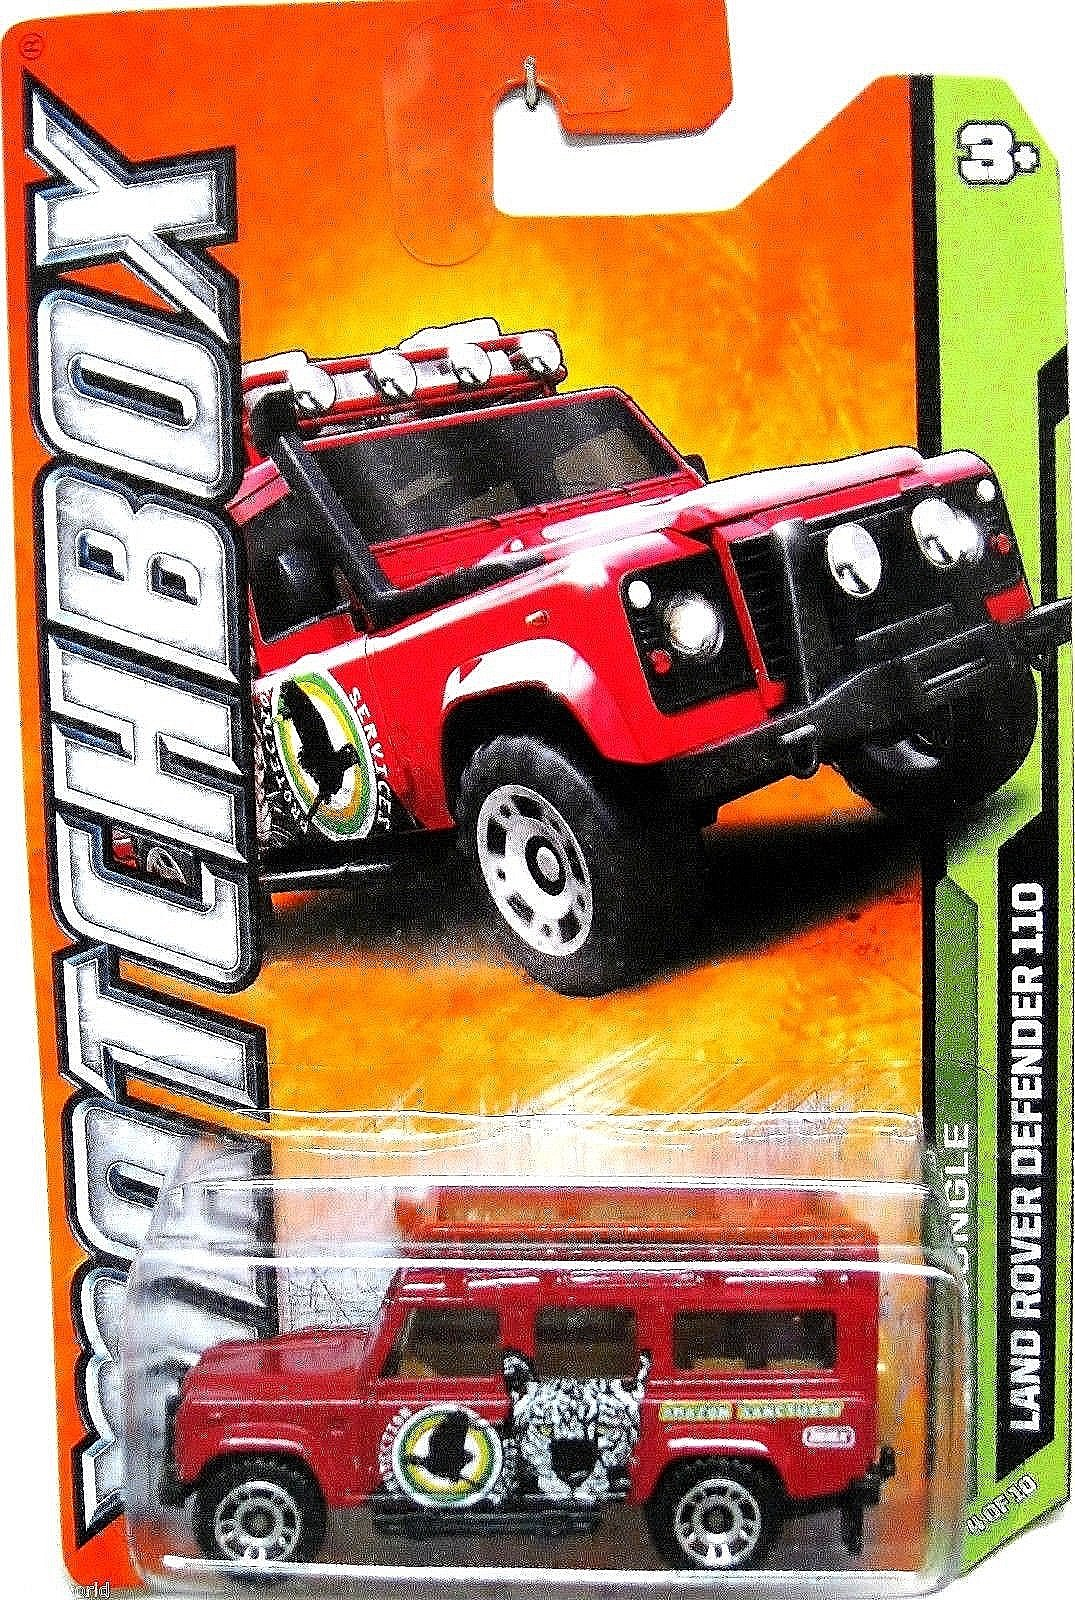 Matchbox 2012-104 MBX Jungle Land Rover Defender 110 RED 1:64 Scale